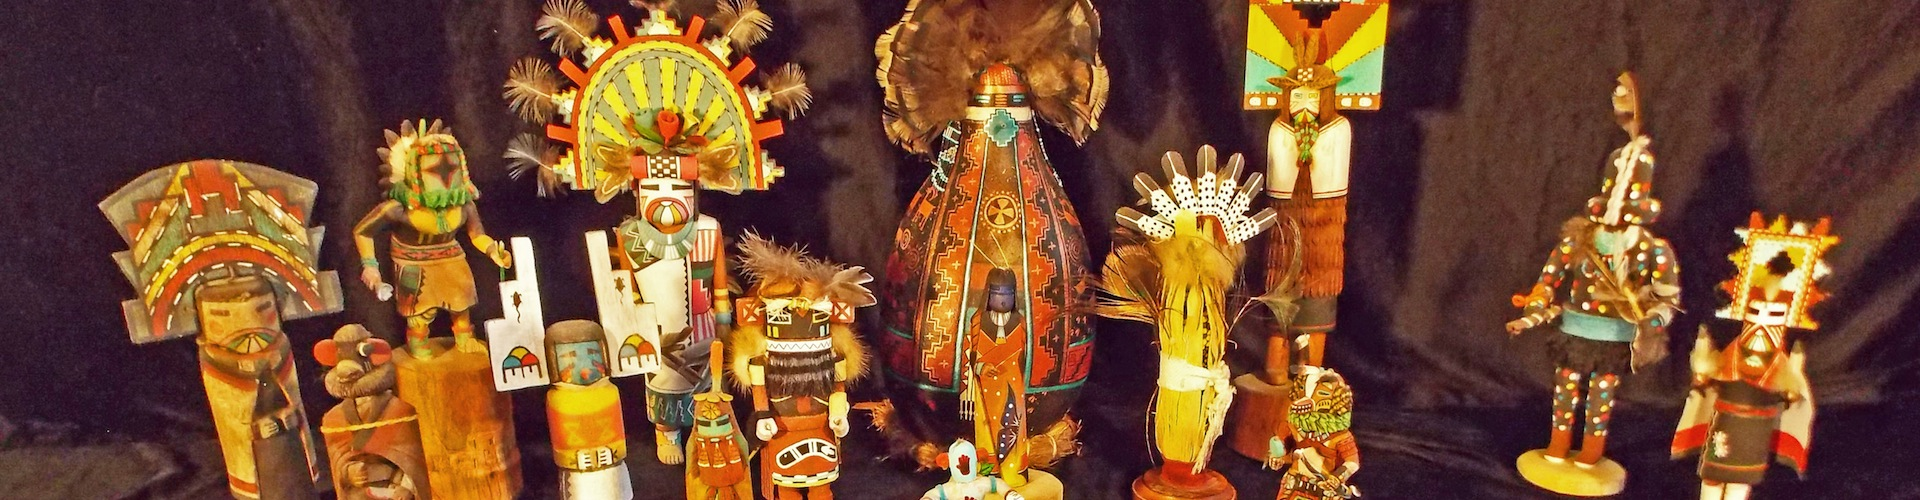 Native American Kachina Dolls at the Travis County Folk Art Museum